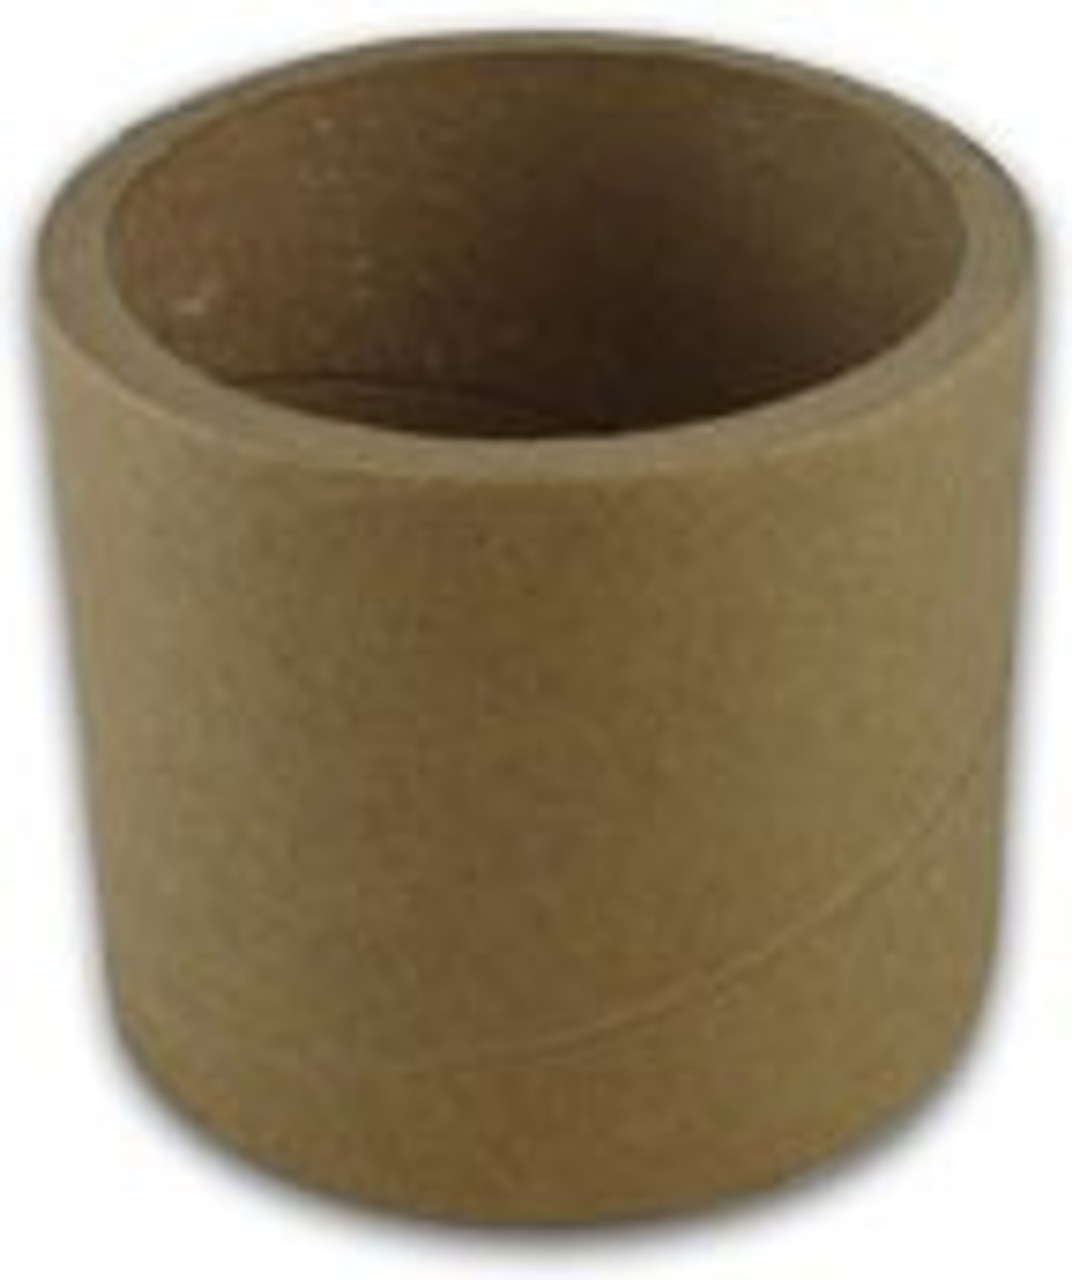 "Empty Cores 3"" X 8 1/8"" wide - Box of 50 